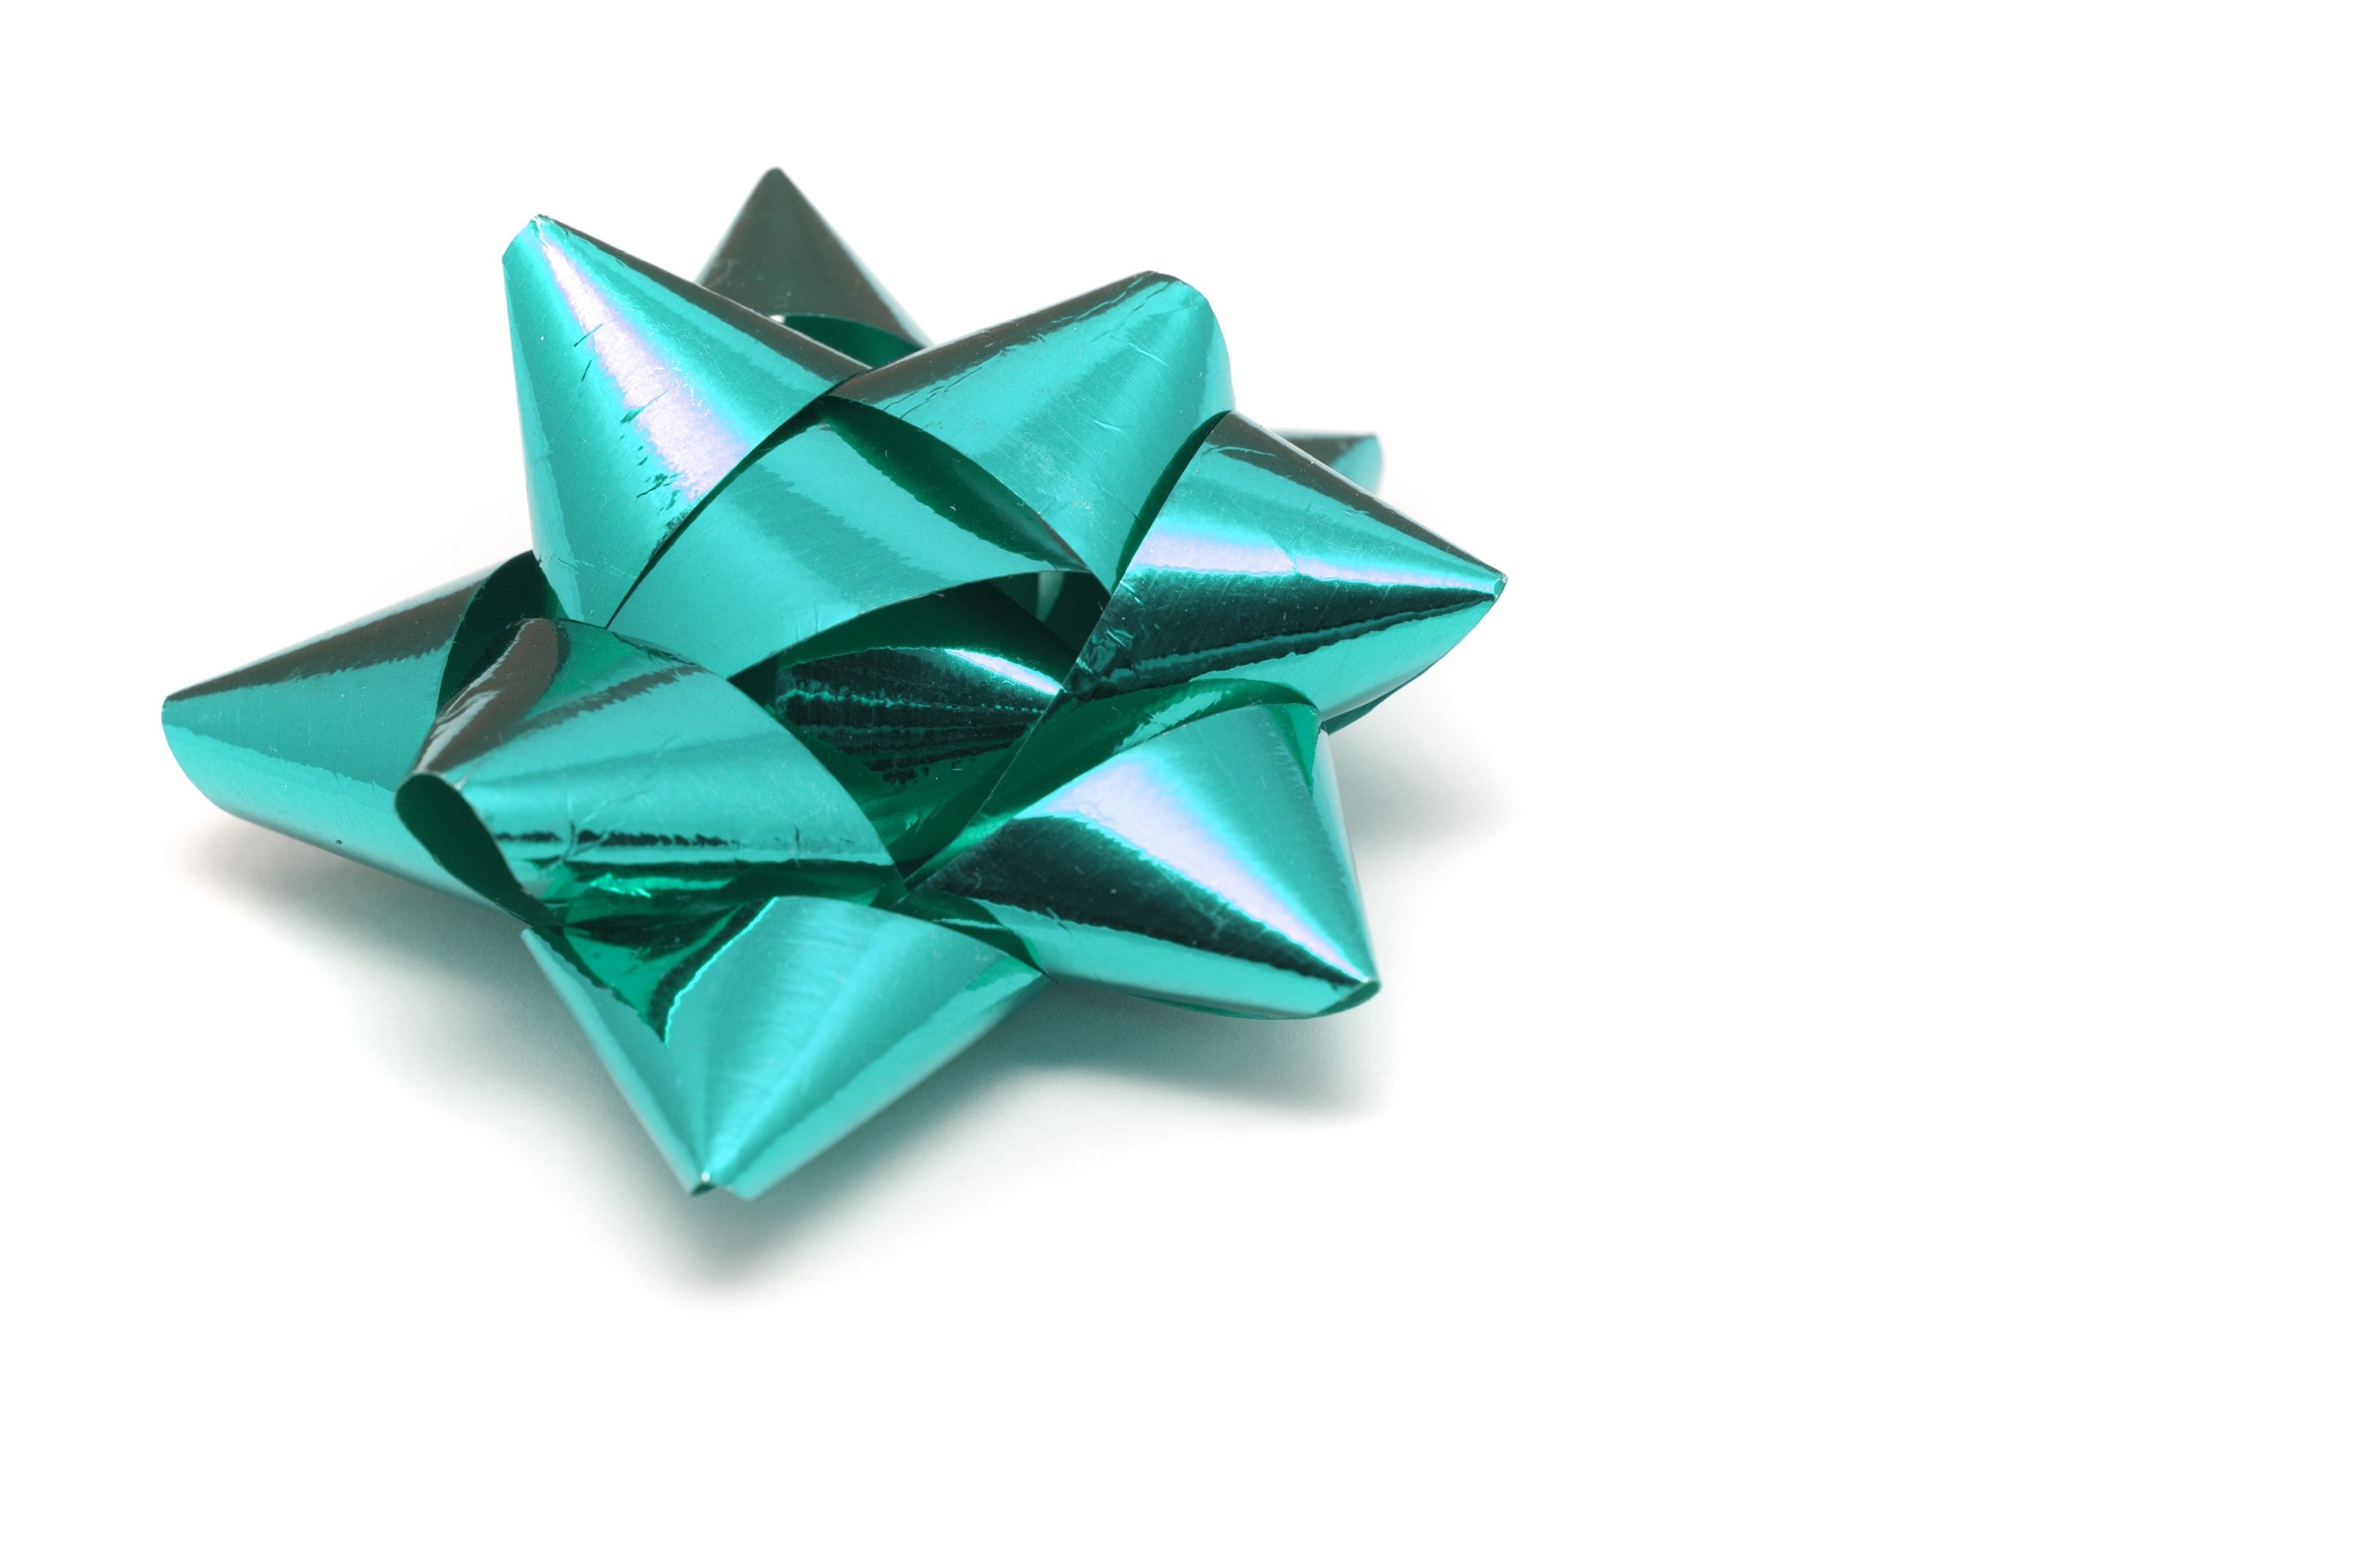 Photo of ornate cyan bow for gift wrapping free christmas images ornate cyan bow made from metallic foil ribbon for gift wrapping and decorating seasonal and christmas negle Gallery